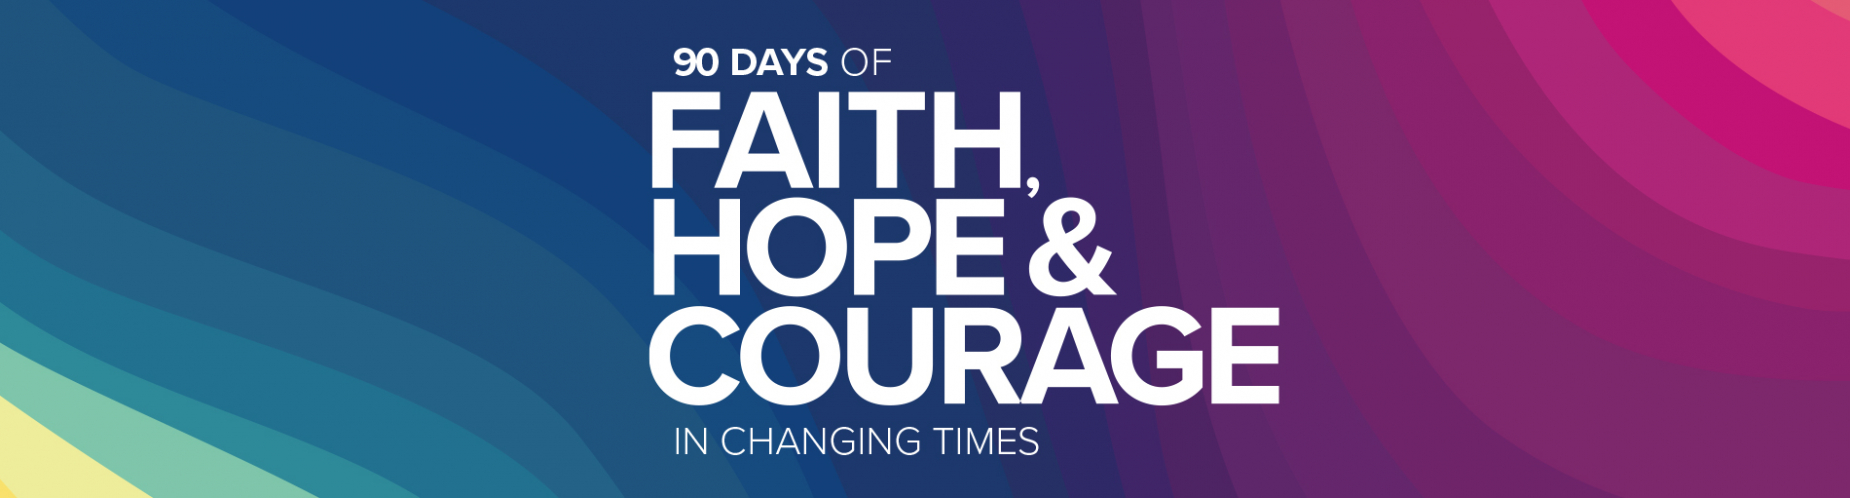 90 Days of Faith, Hope and Courage in Changing Times